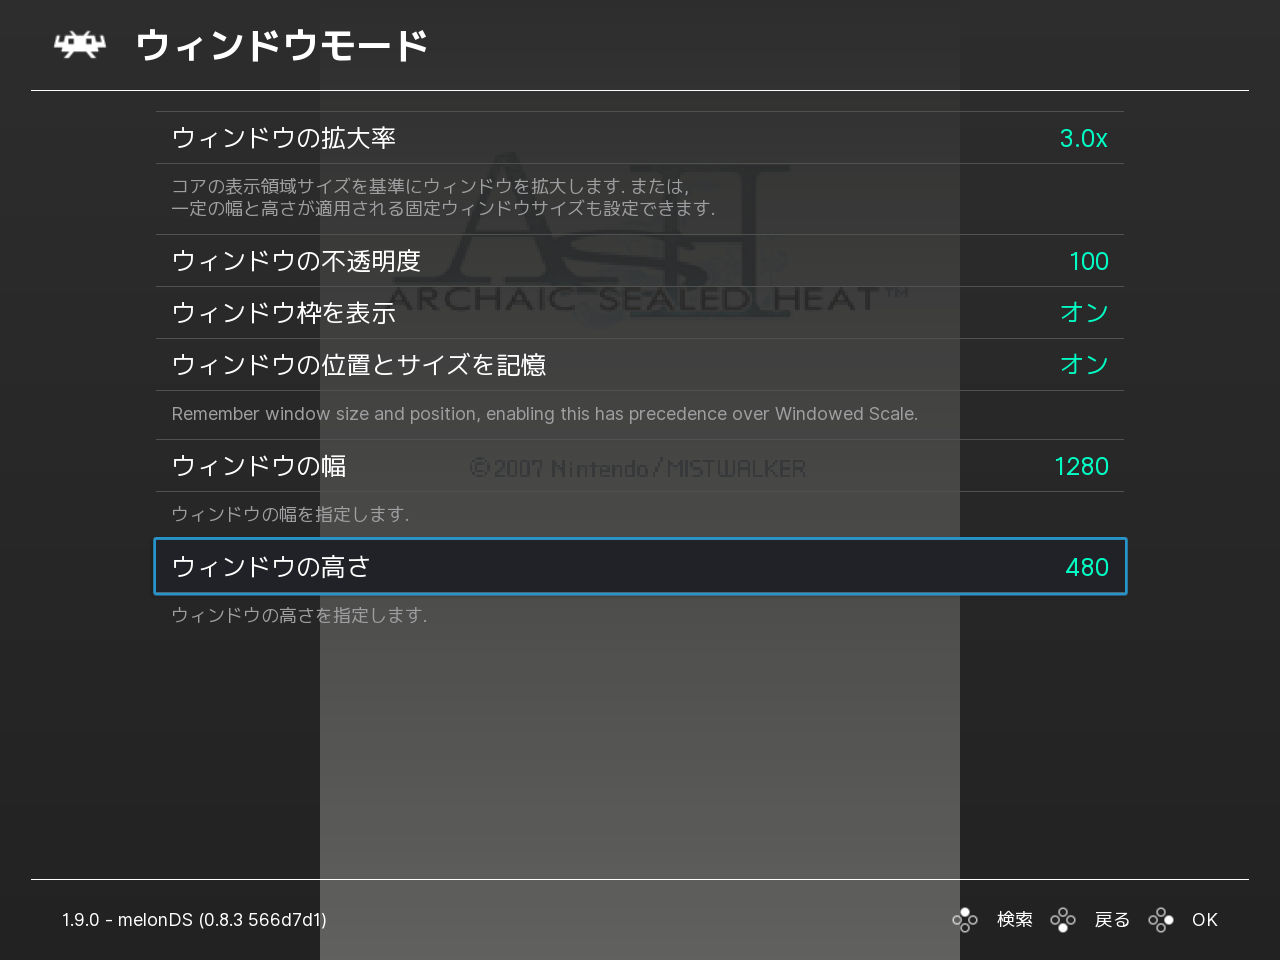 RetroArch melonDS用の設定 ウィンドウサイズ